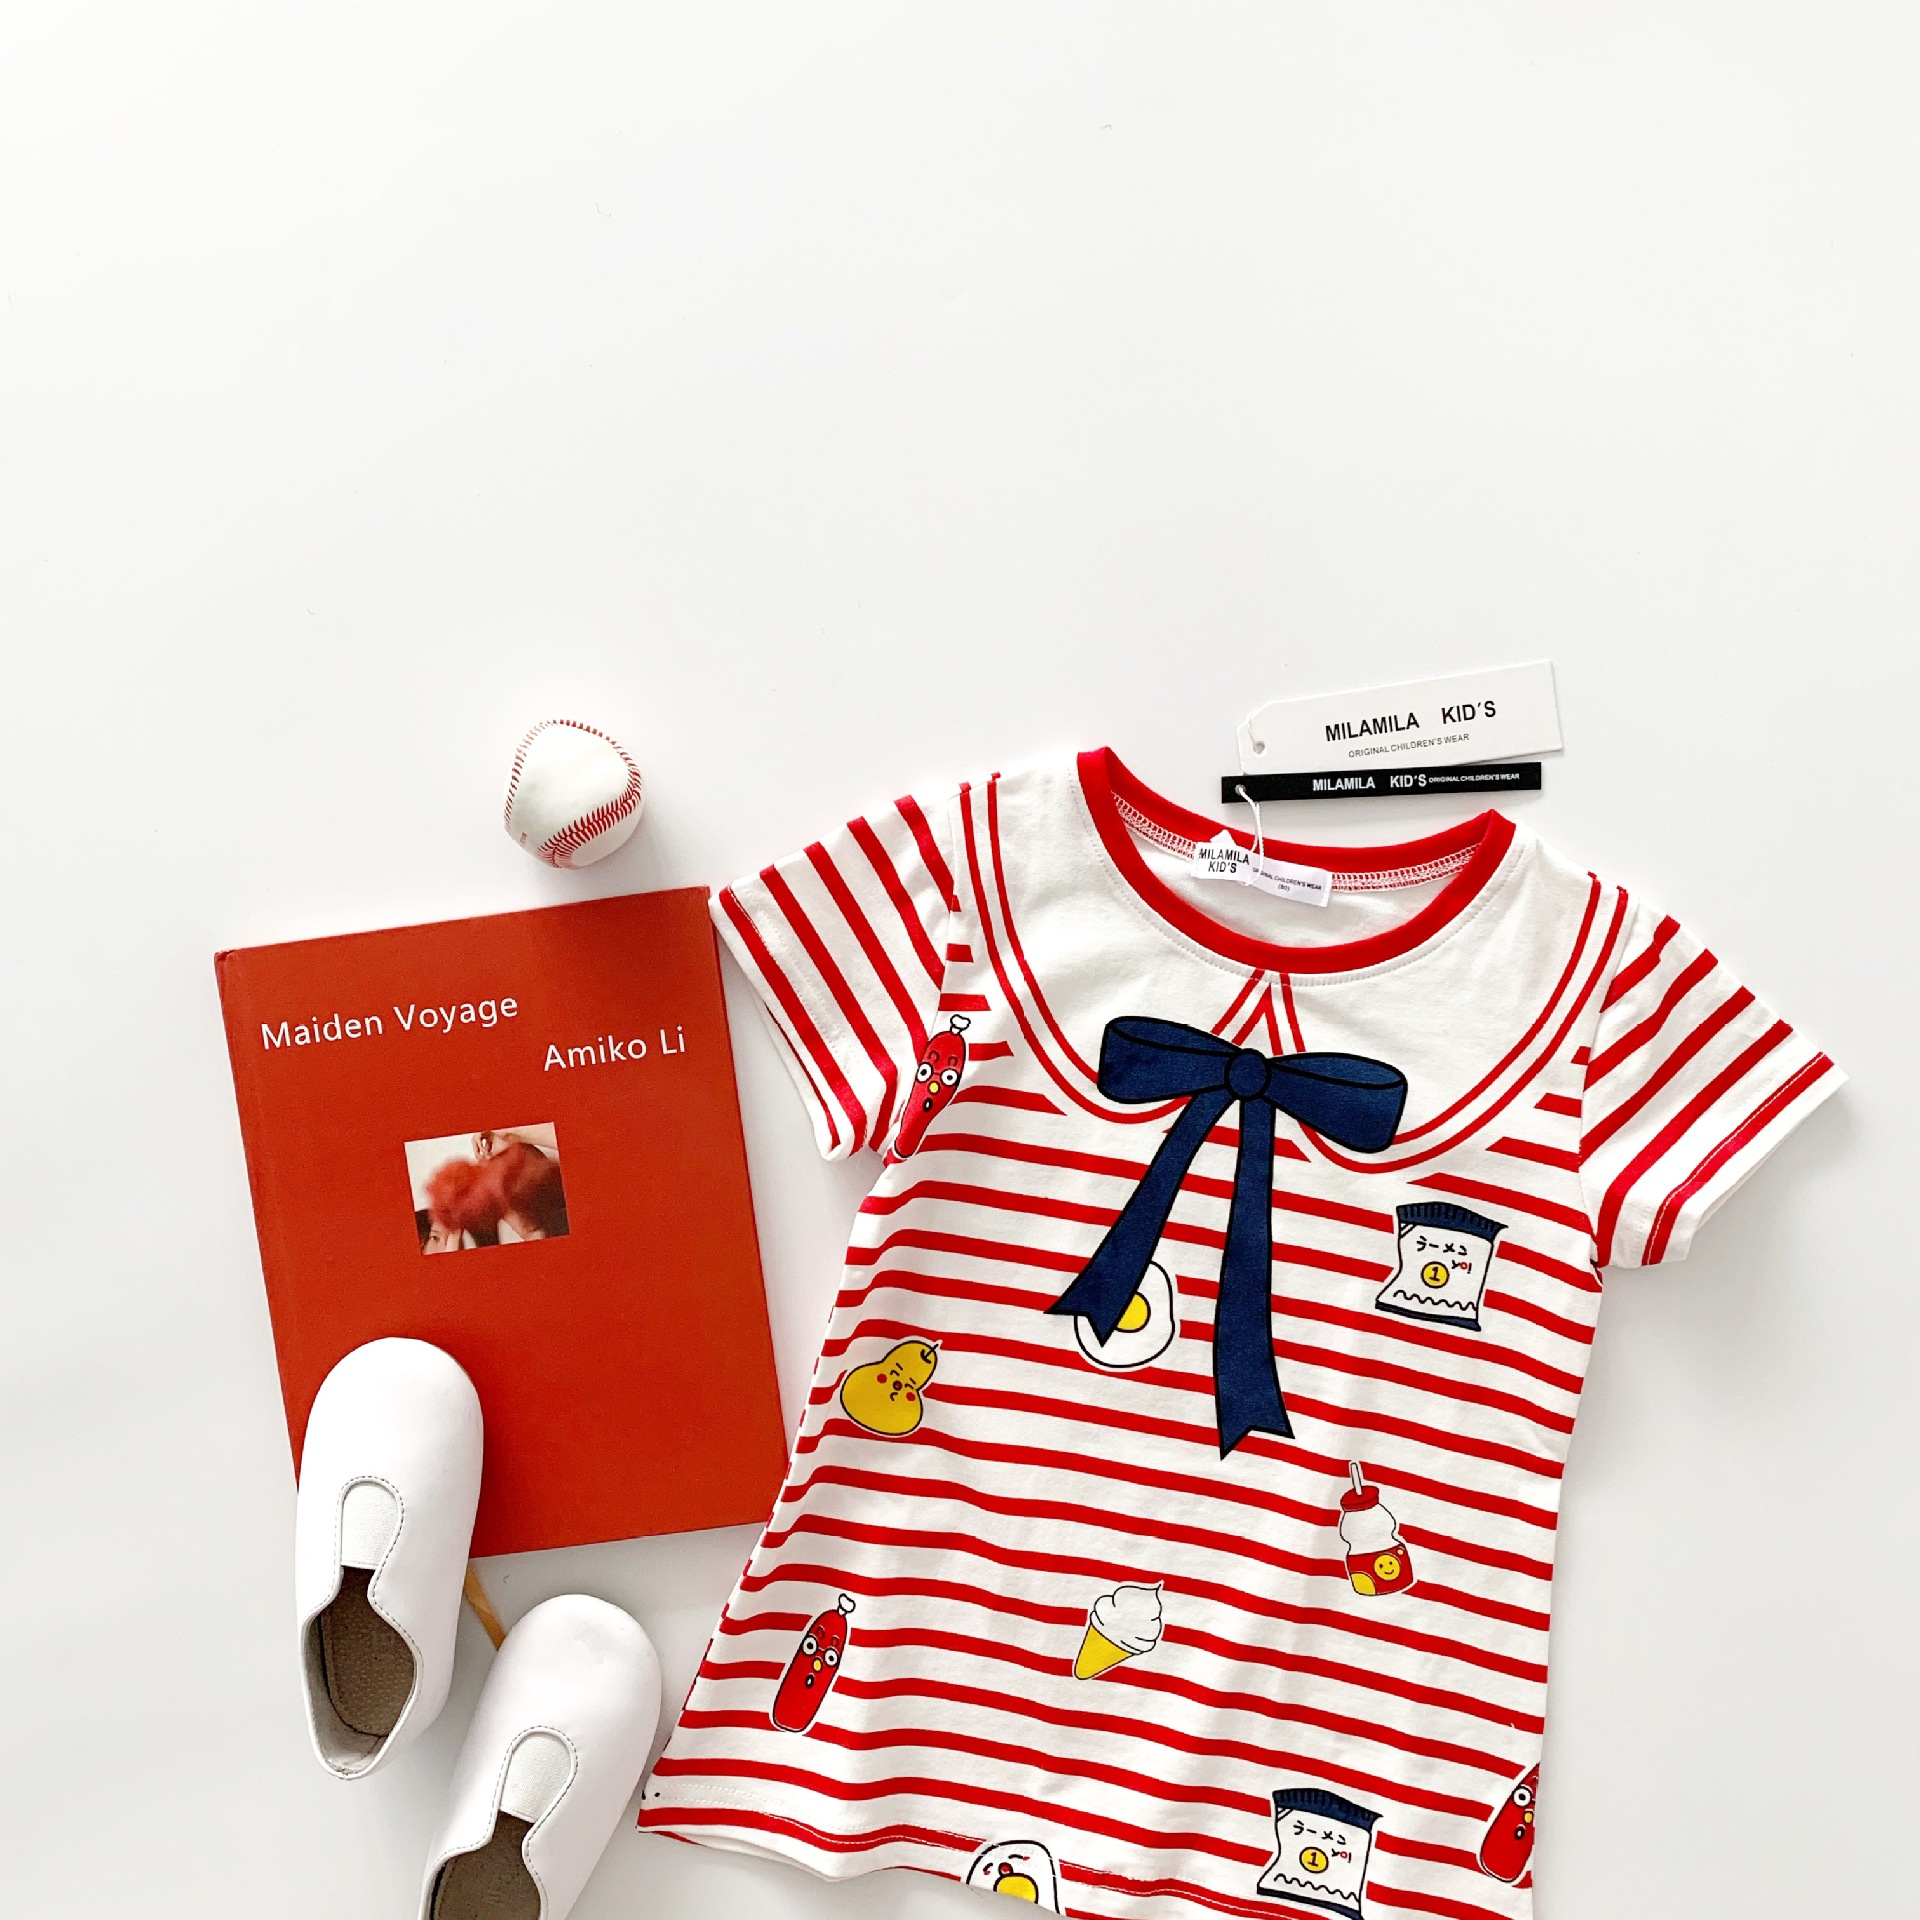 Tonytaobaby Summer New <font><b>Girls</b></font>' Children's Striped Snack Candy <font><b>Girl's</b></font> <font><b>T</b></font>-<font><b>shirt</b></font> <font><b>Dress</b></font> <font><b>Girls</b></font> <font><b>Dresses</b></font> image